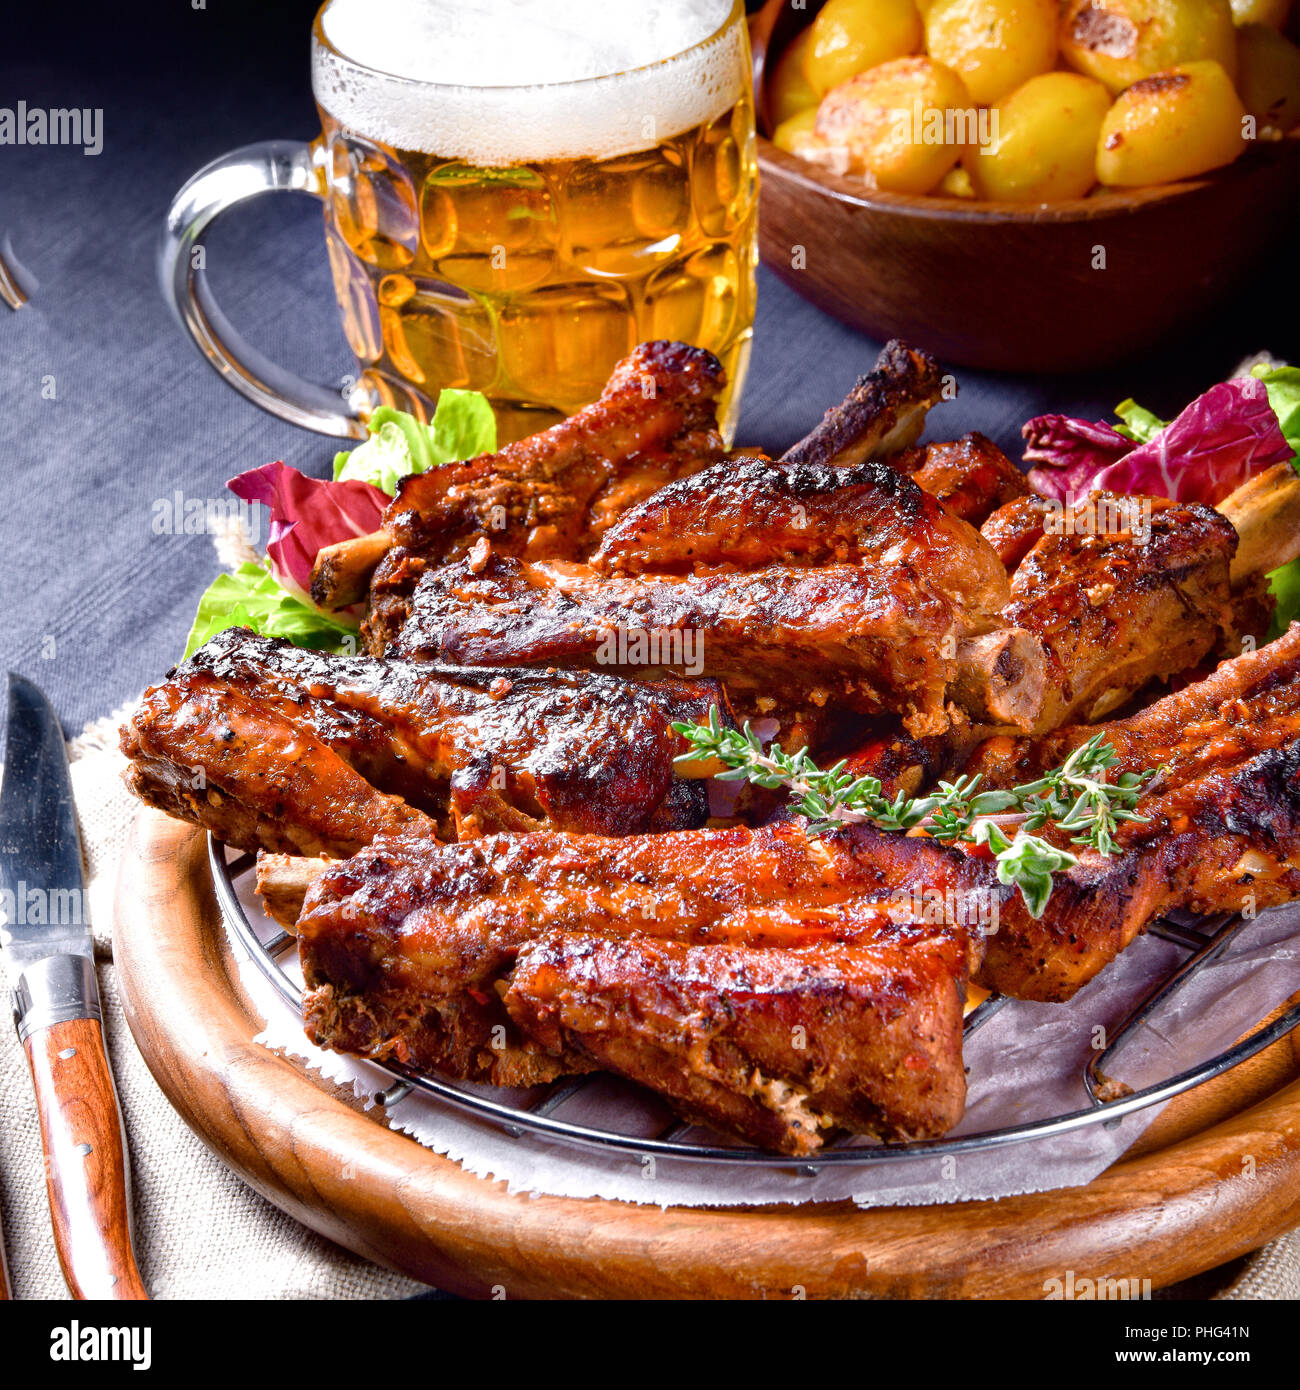 Delightful BBQ Spareribs from the Smoker - Stock Image